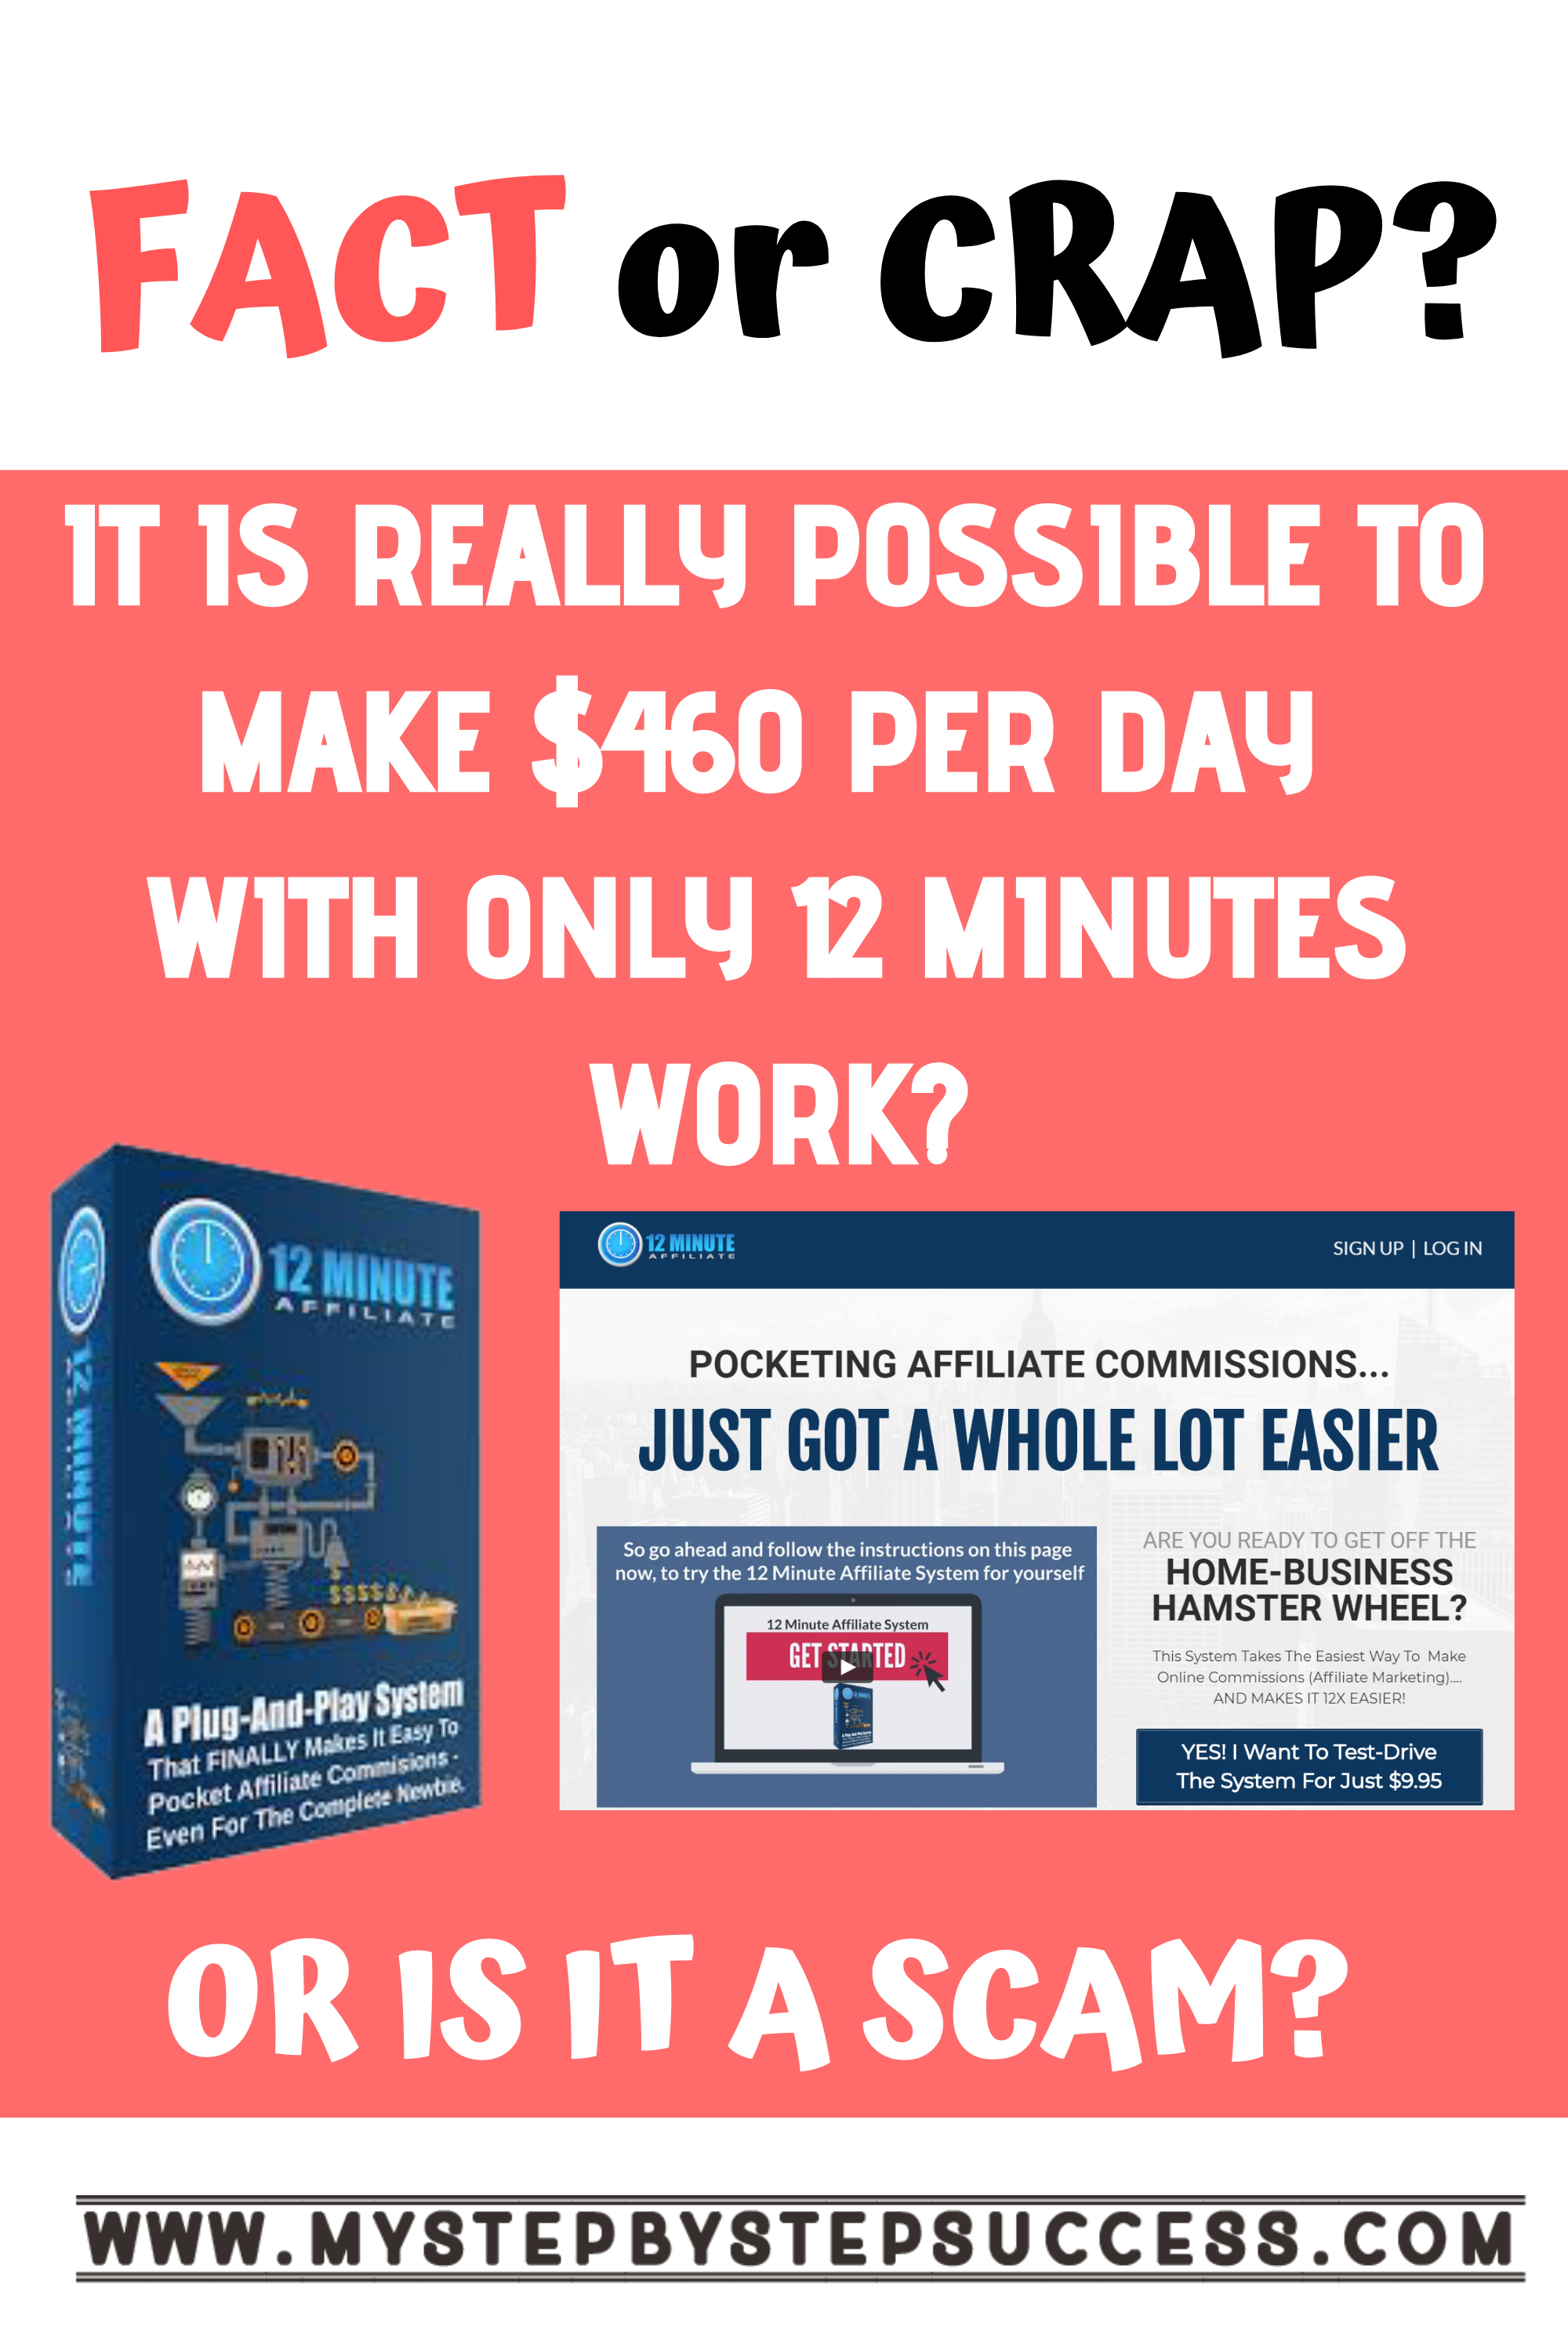 Buy 12 Minute Affiliate System Lets Make A Deal